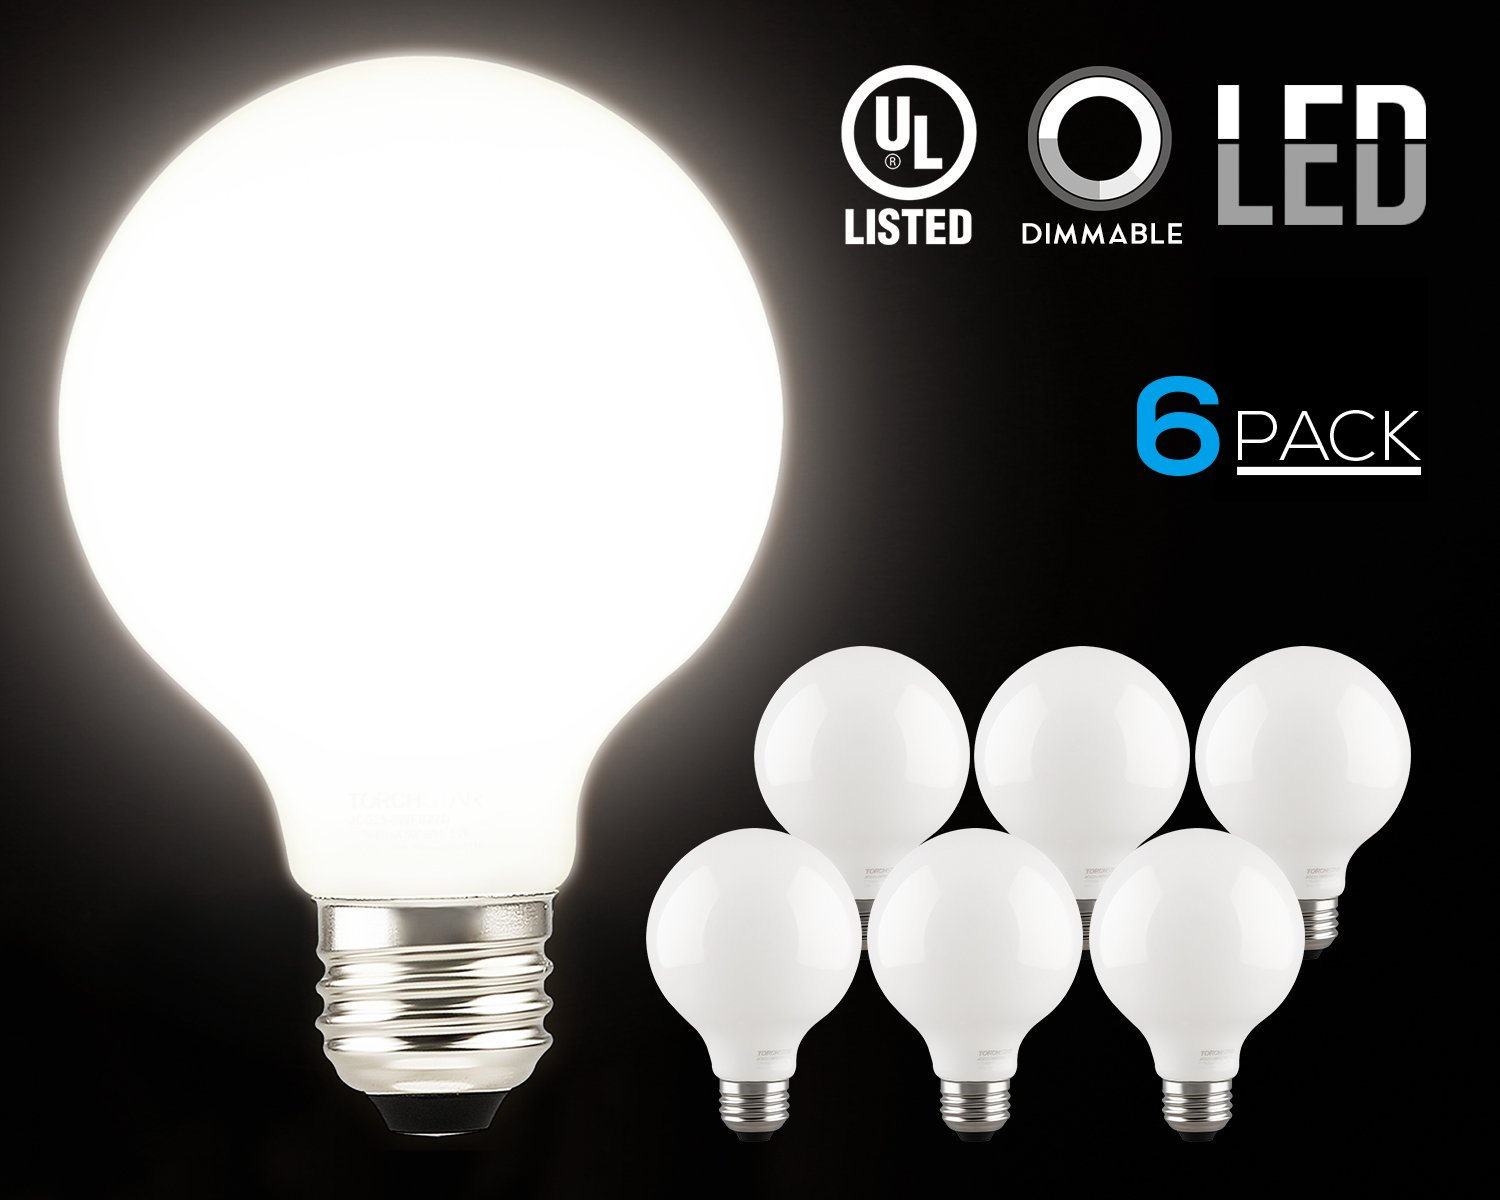 LED Dimmable G25 Globe Filament Eye Care Bulb, 5W (60W Equivalent) Decorative Frosted Milky Glass Light Bulb, UL-listed, Daylight 5000K, 360°Beam Angle, E26 Base, 2 YEARS WARRANTY, Pack of 6